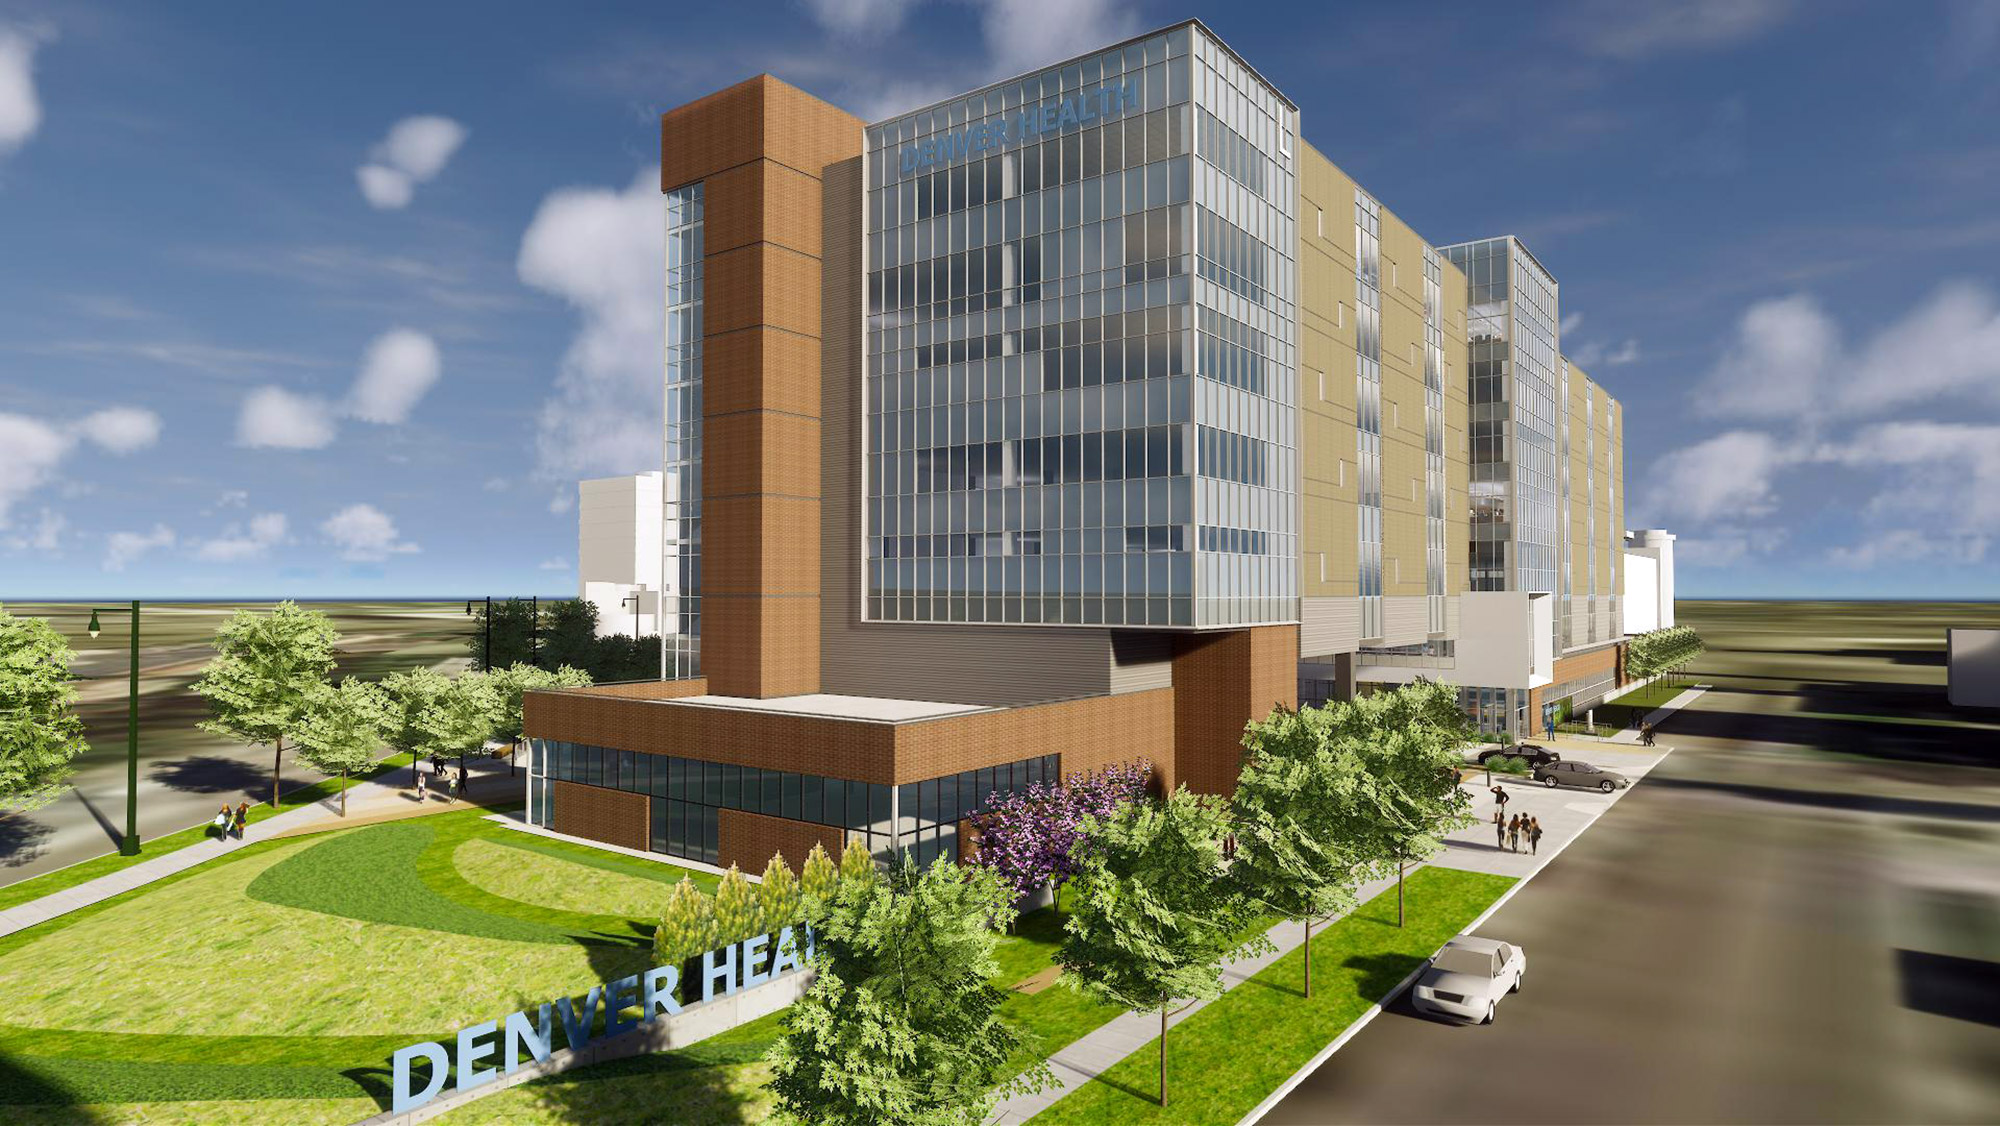 Rendering of Denver Health's proposed Outpatient Center, courtesy of HKS Architects